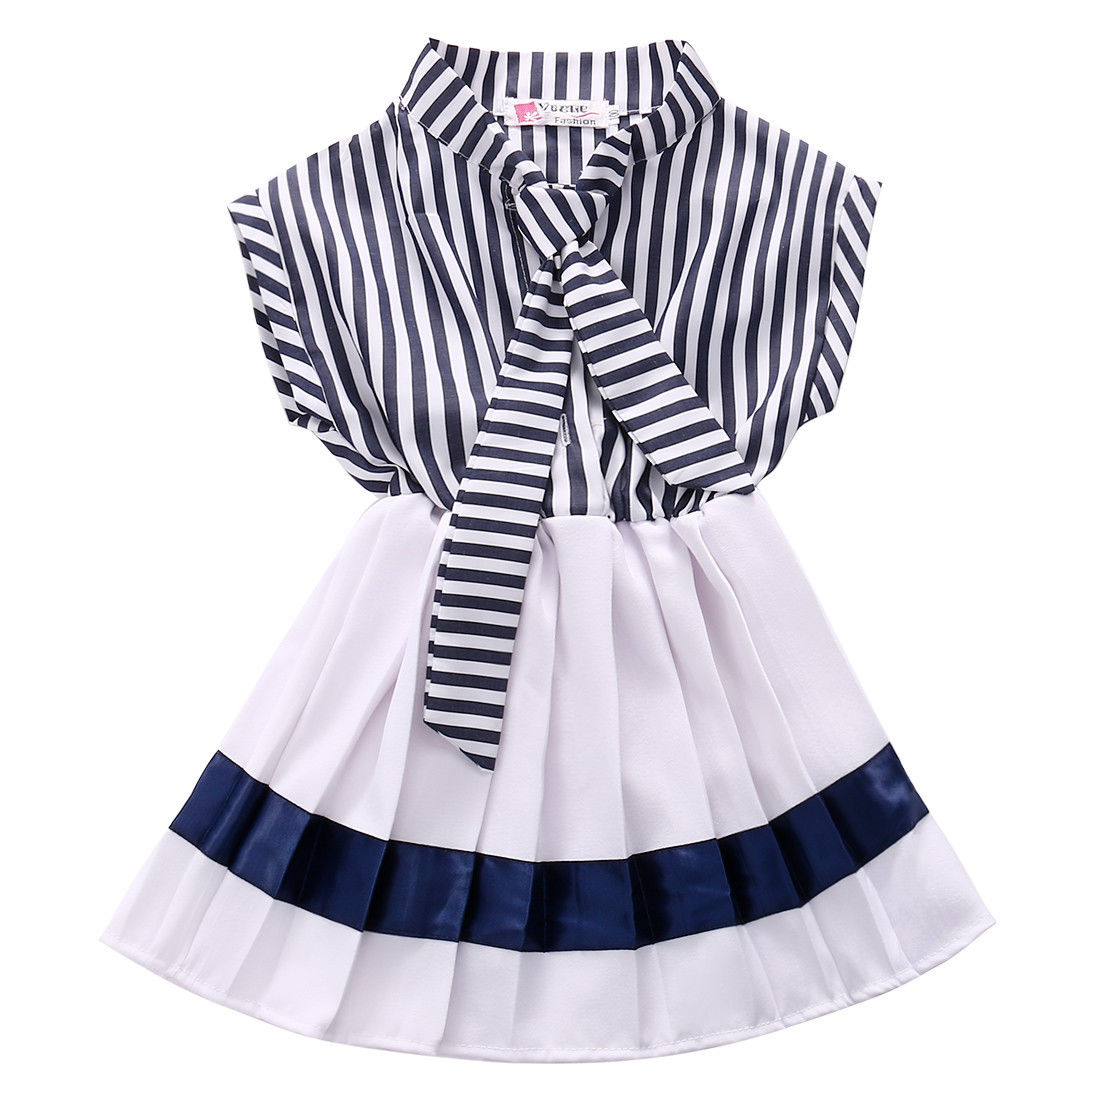 Navy Toddler Dress | Lovely Kids Infant Toddler Children Baby Girls Navy Striped Woven Princess Party Dress Sleeveless Dresses 2 7Y